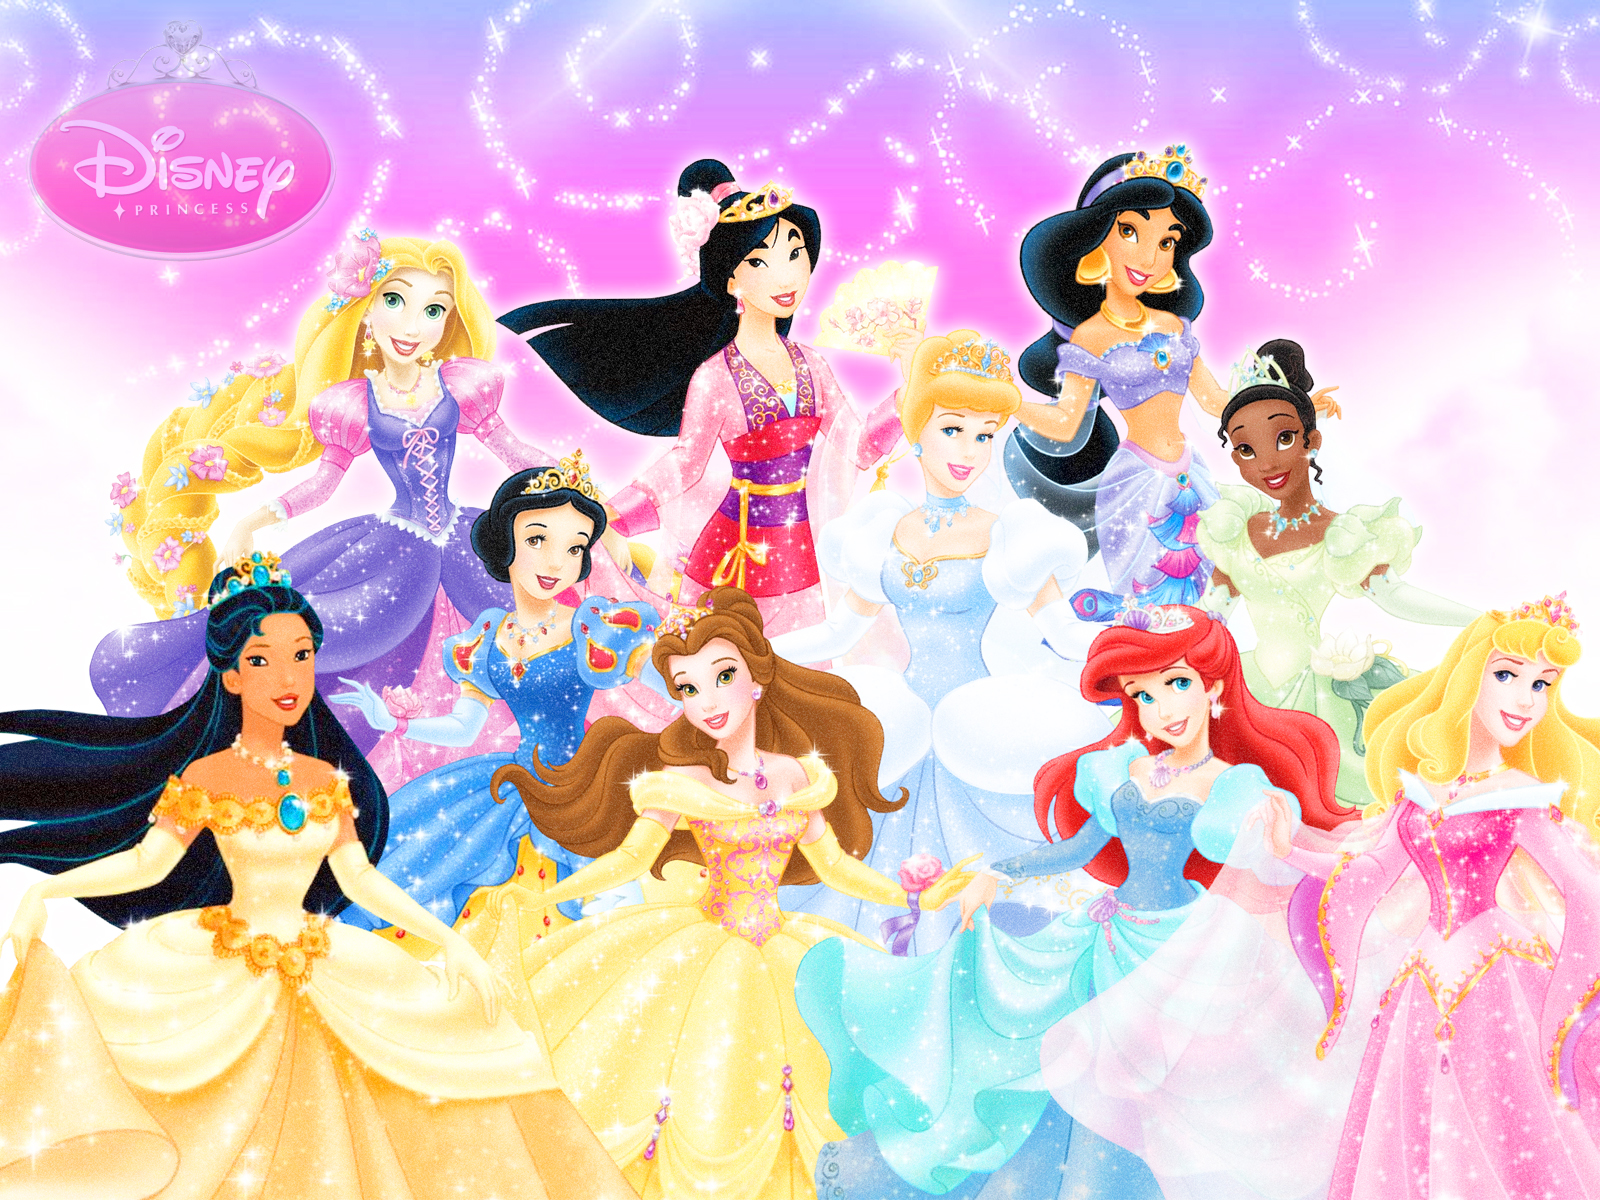 Disney Princess images Ten Official Disney Princesses HD 1600x1200